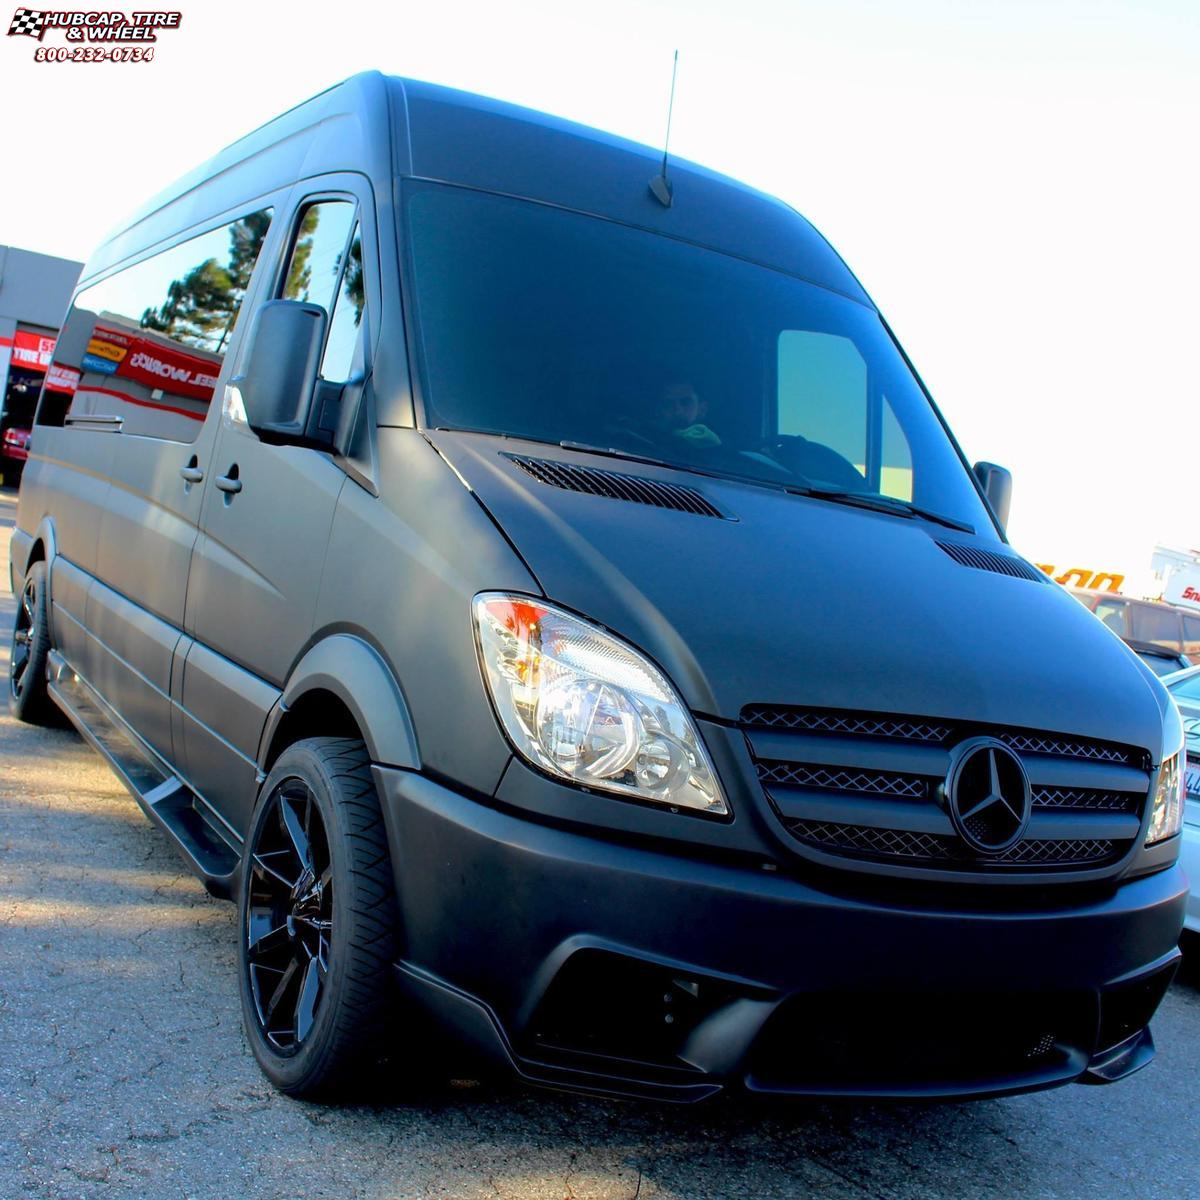 2014 mercedes benz sprinter 3500 kmc km651 slide wheels